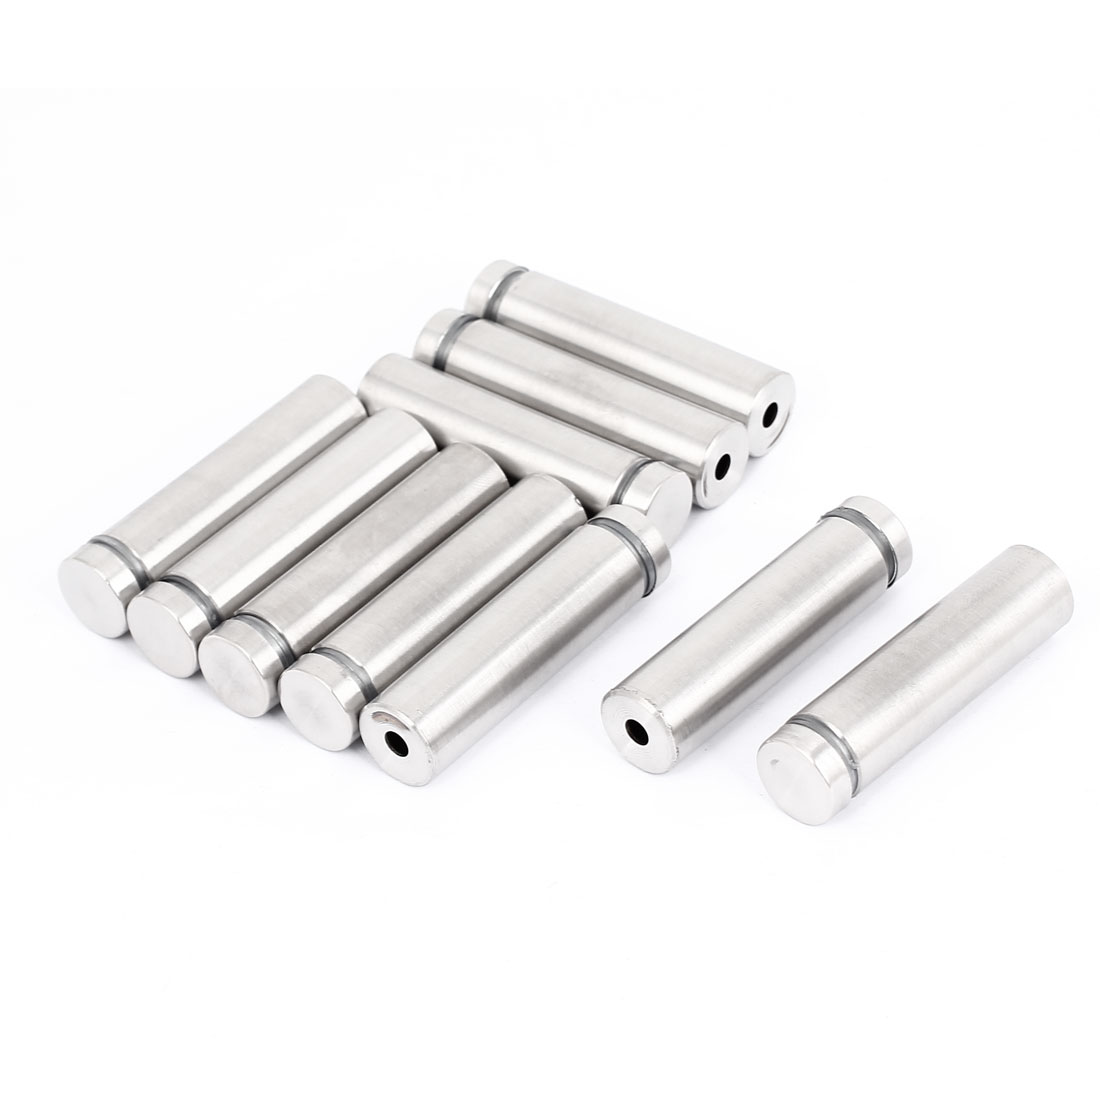 16mm x 60mm Stainless Steel Advertising Frameless Glass Standoff Pins 10pcs